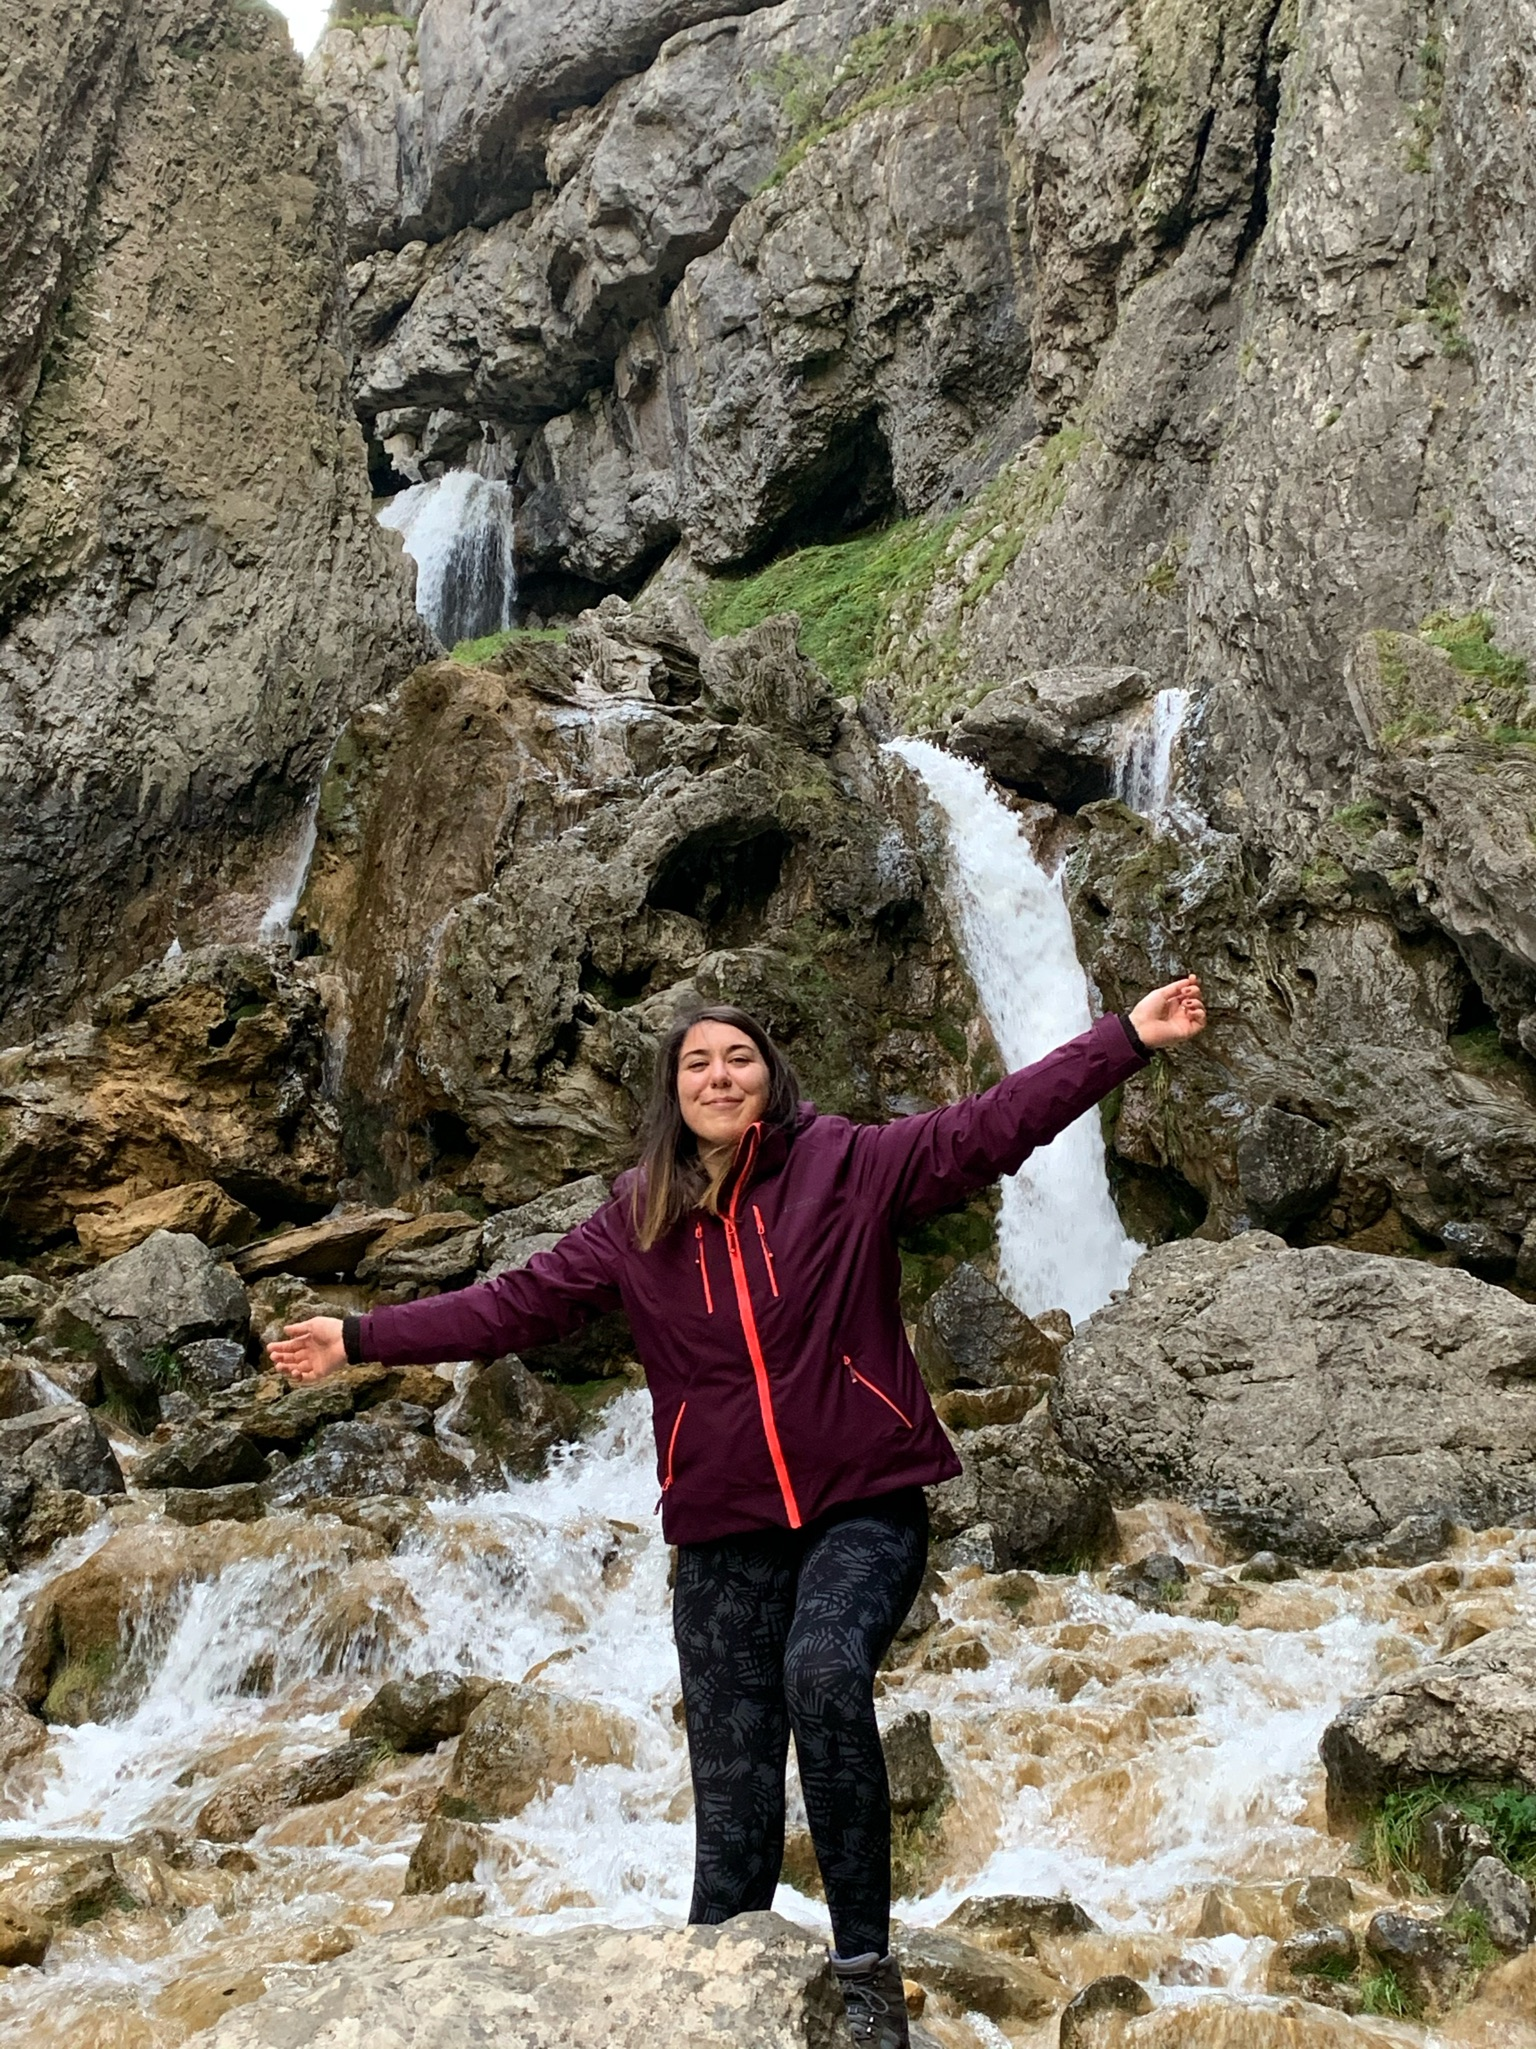 Me stood in front of Gordale Scar waterfall with my arms in the air